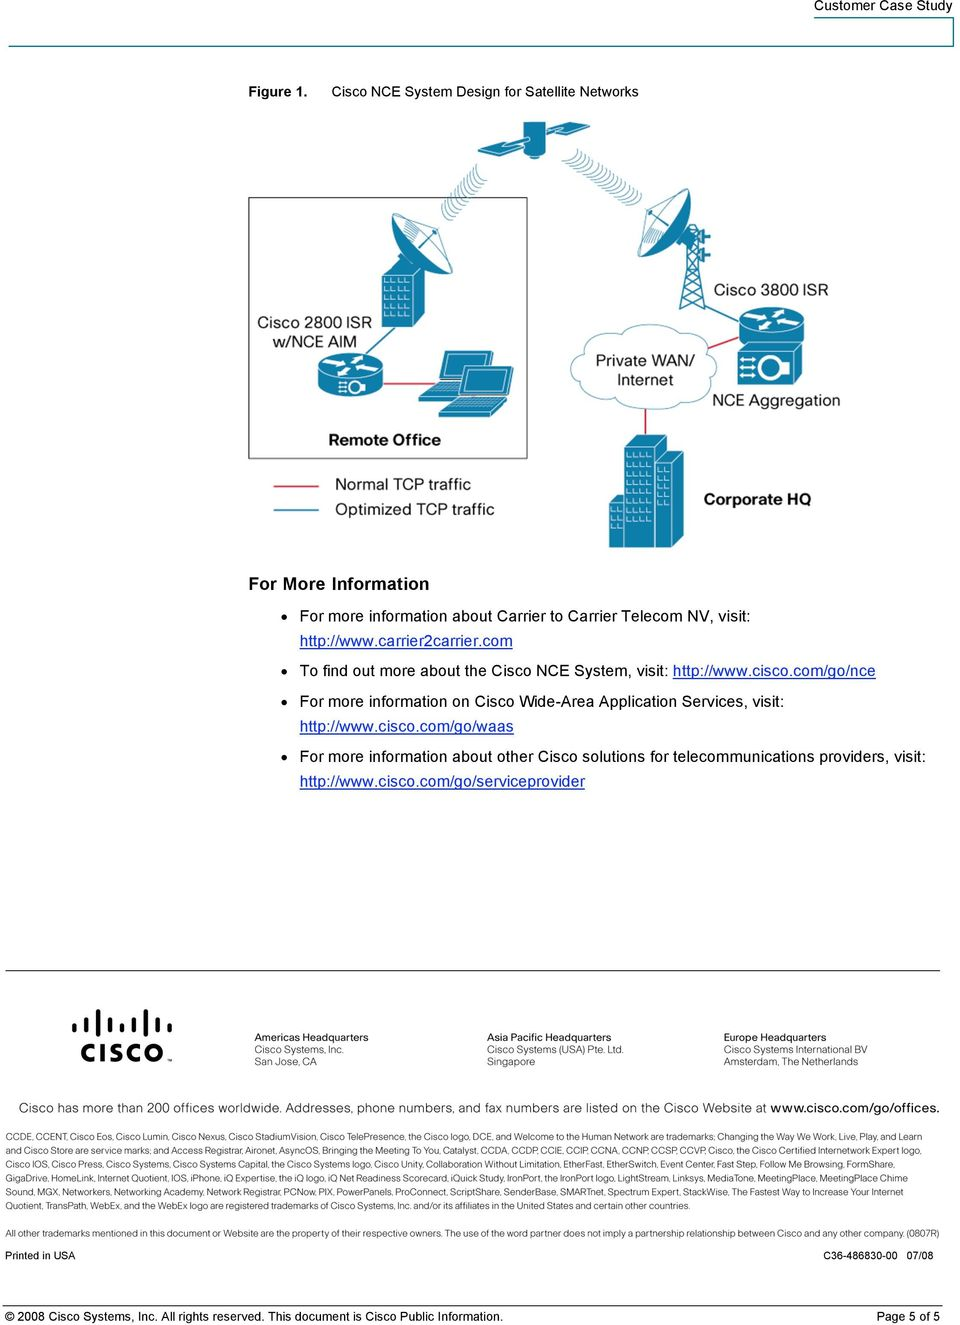 com/go/nce For more information on Cisco Wide-Area Application Services, visit: http://www.cisco.